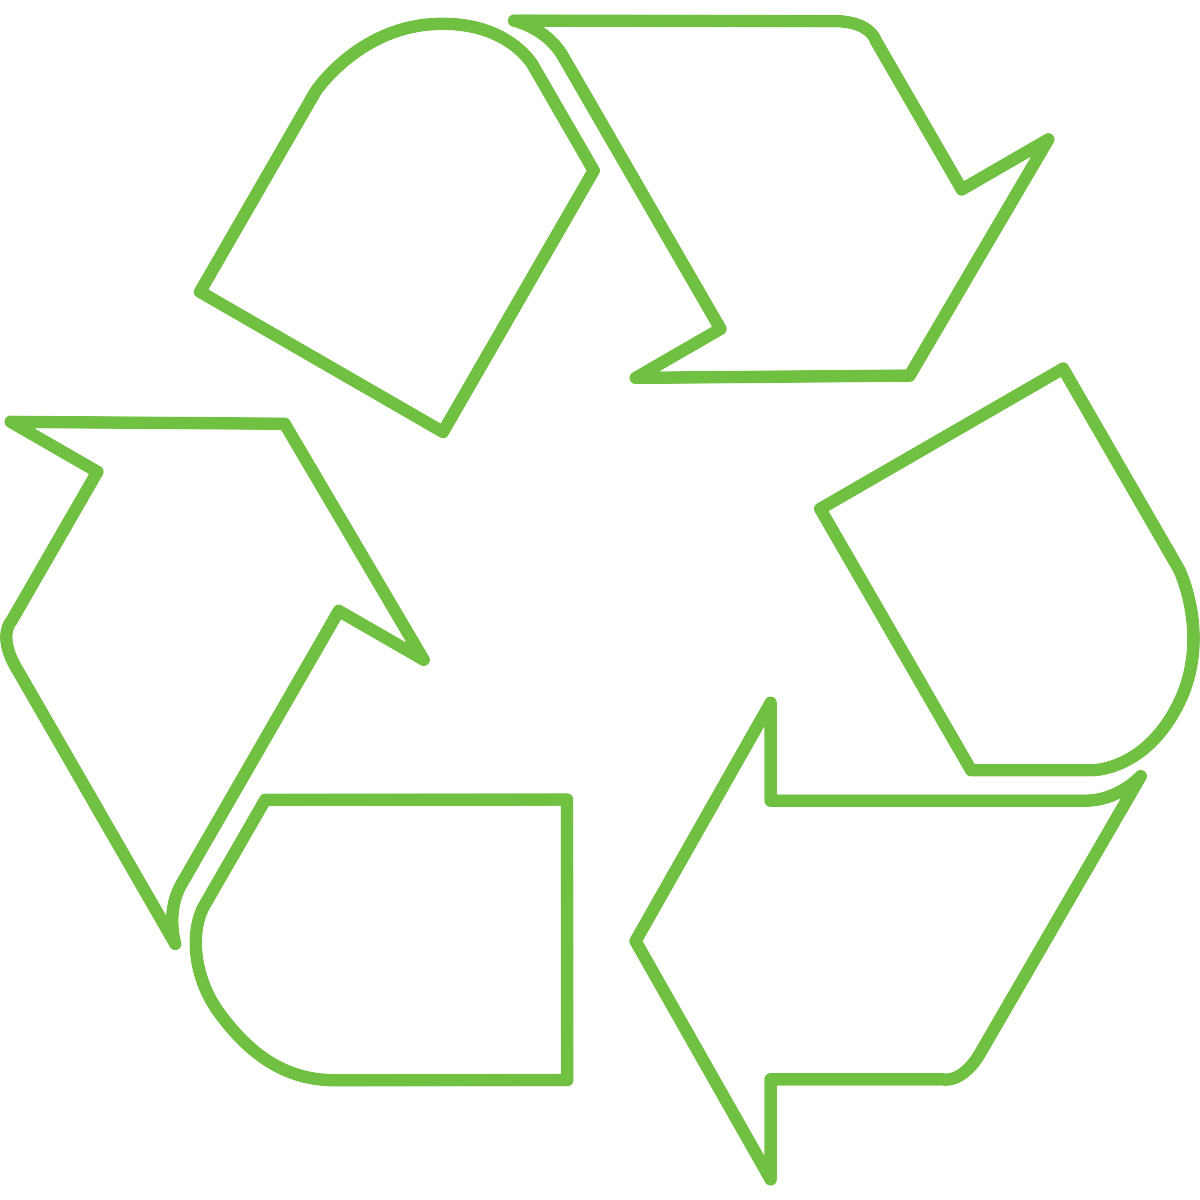 recycle_924762_70C041.png